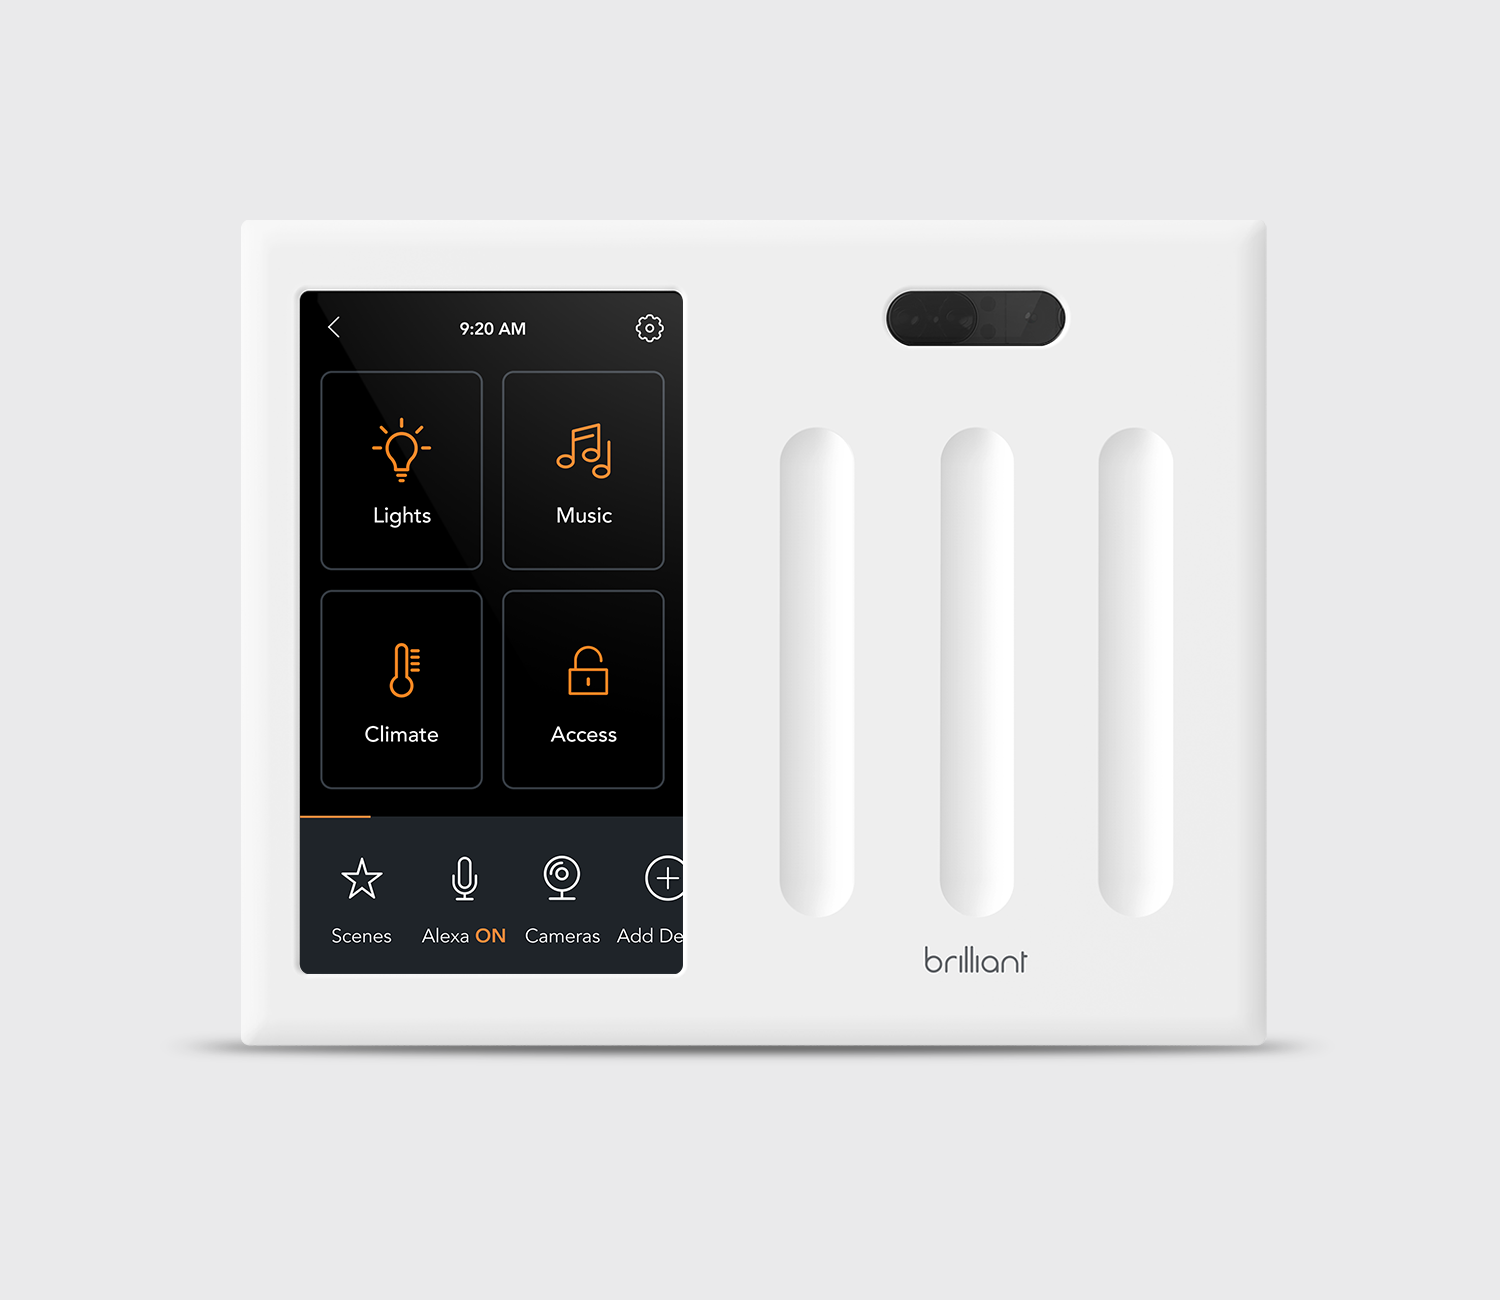 Brilliant All-in-One 3 Switch Smart Home Control - White